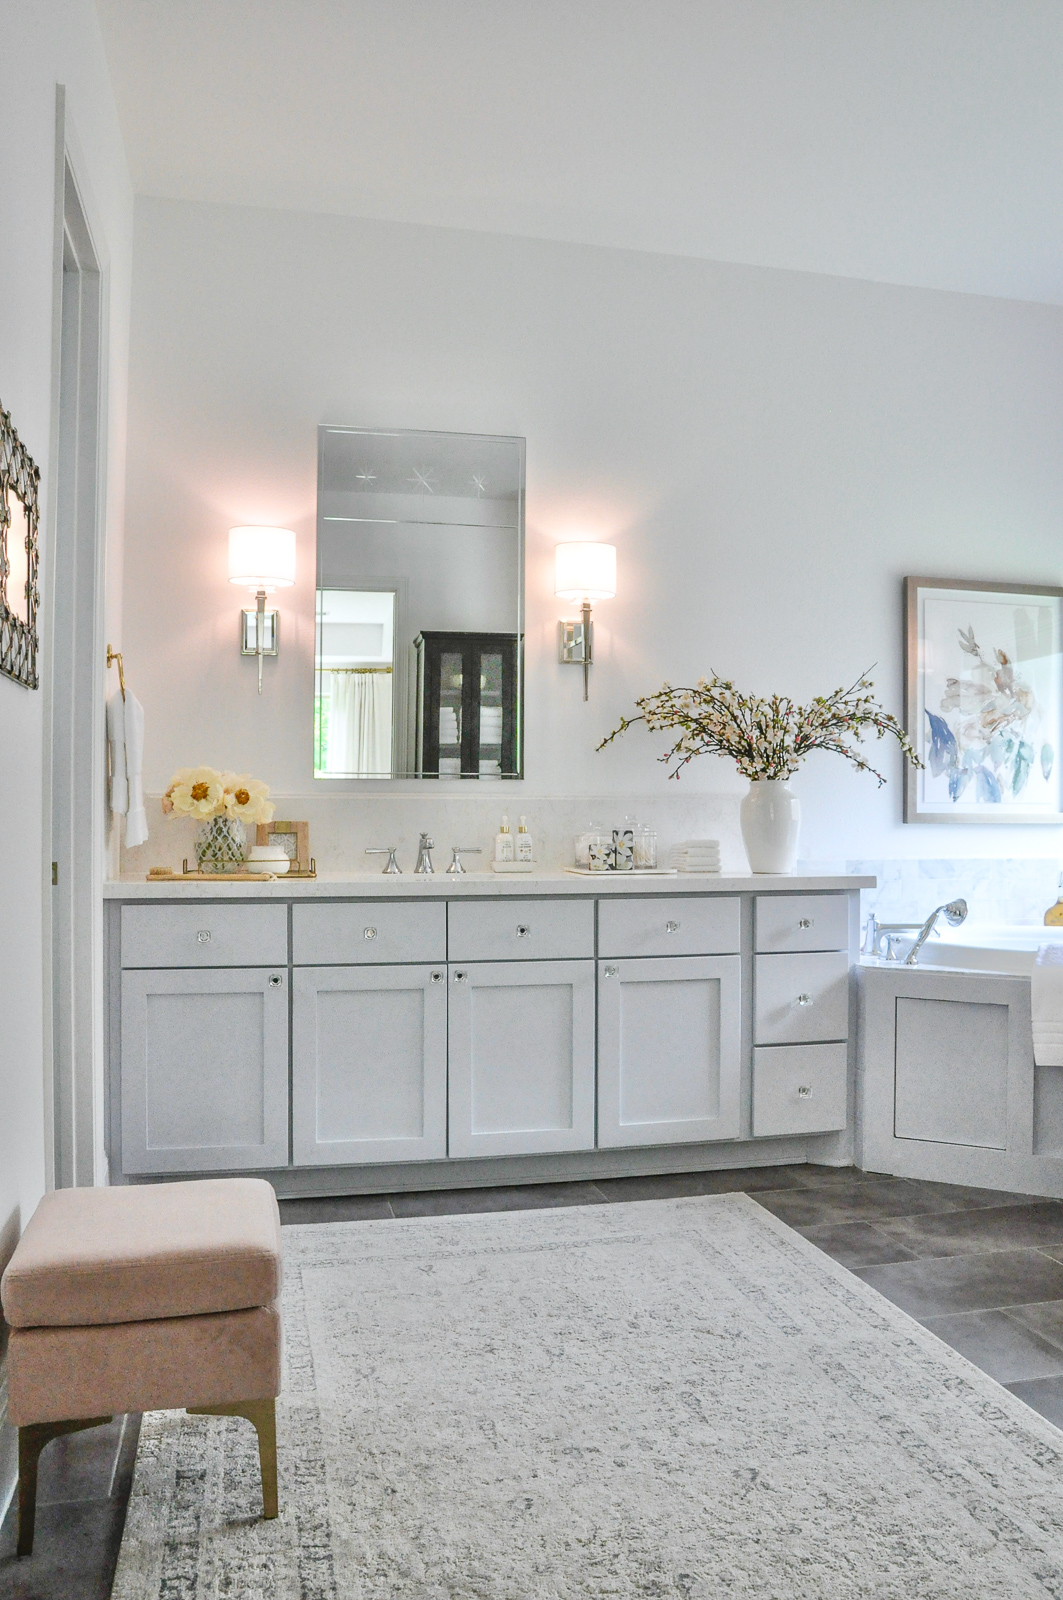 Master bathroom with a bright and beautiful new look. This reveal shows every angle and detail!